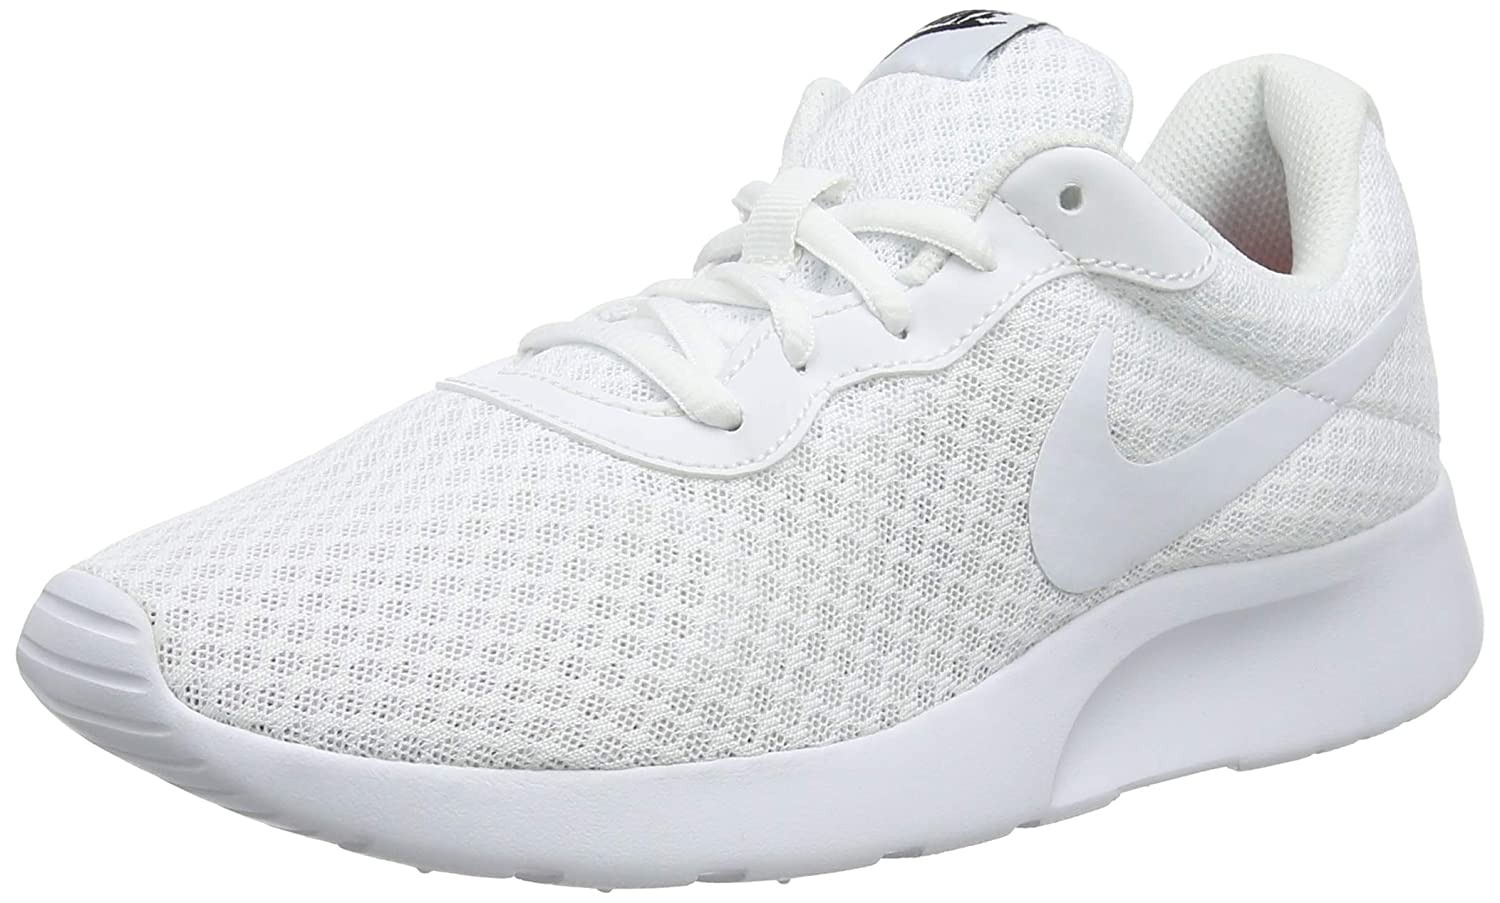 best sale first look online for sale Nike Women's Tanjun Running Shoes